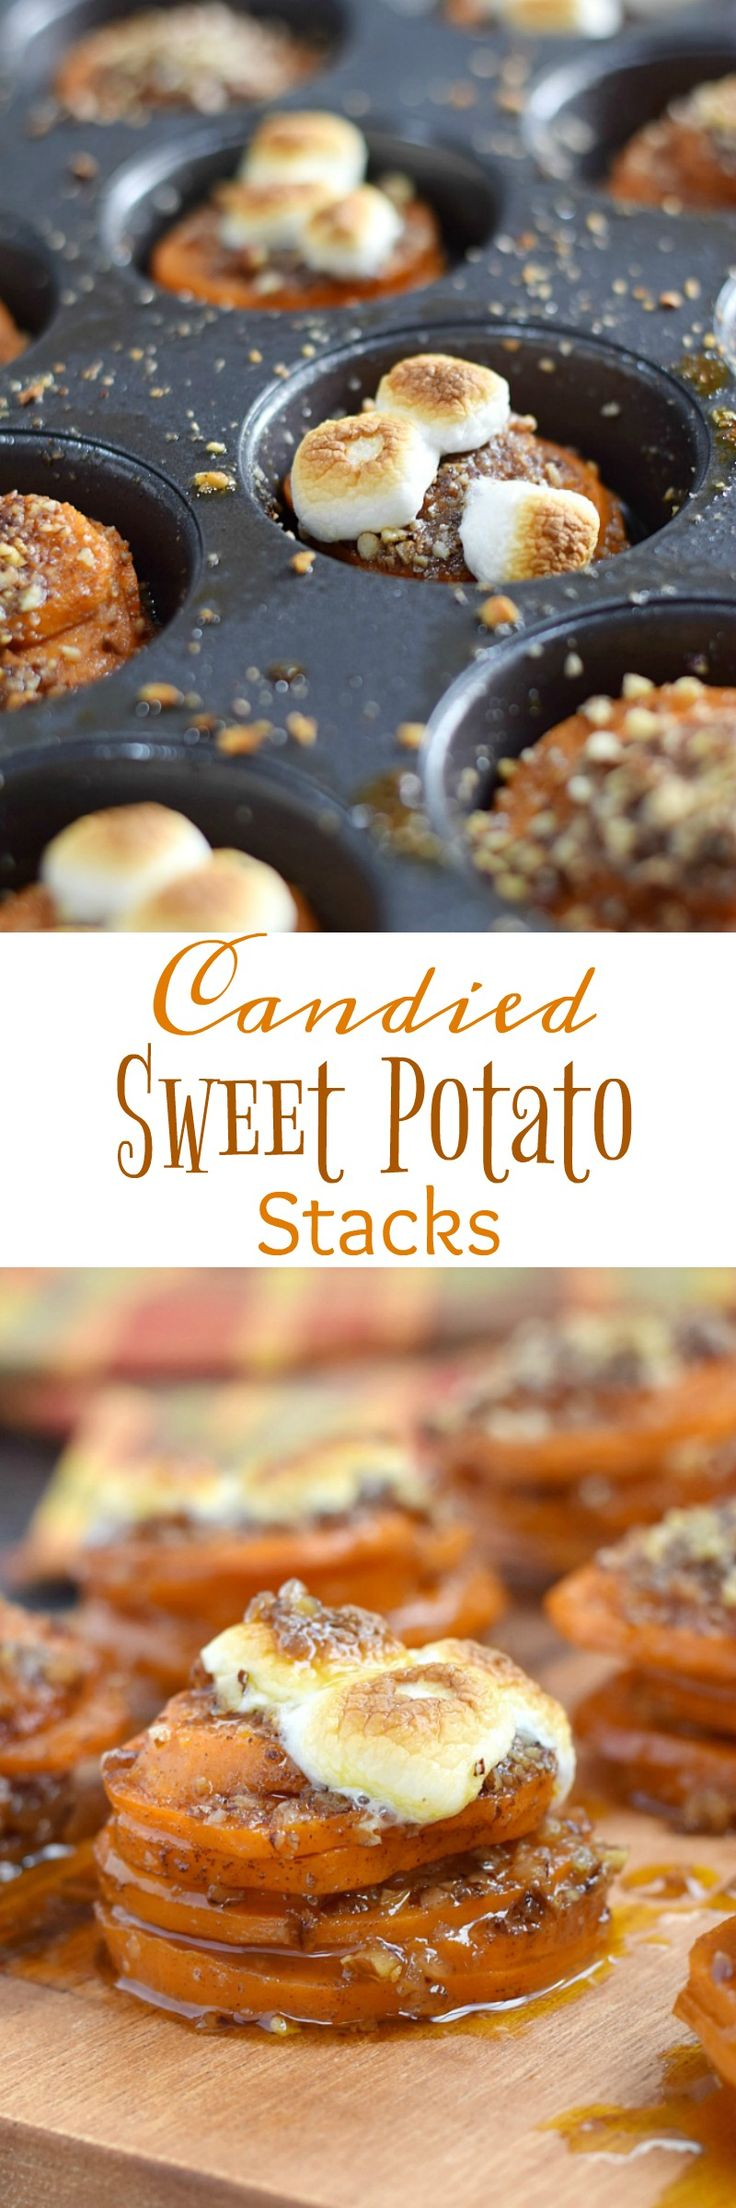 These Candied Sweet Potato Stacks are a fun twist on everyone's favorite holiday side dish | cookingwithcurls.com